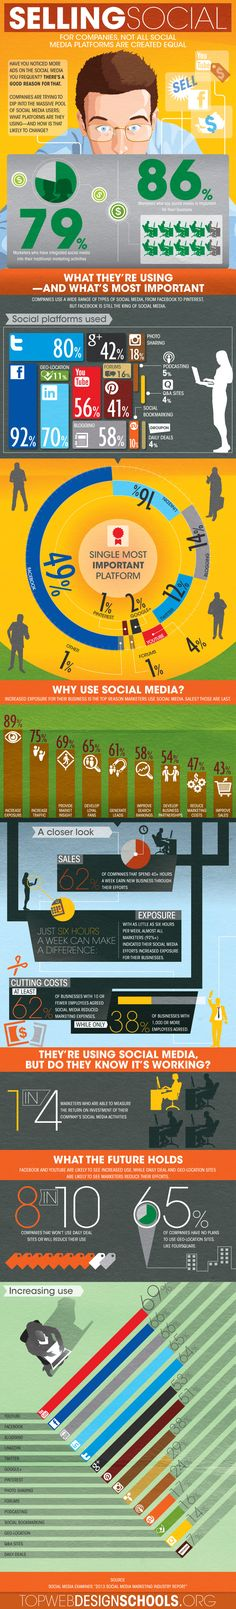 What Are The Most Popular Social Media Platforms For Marketers? #infographic